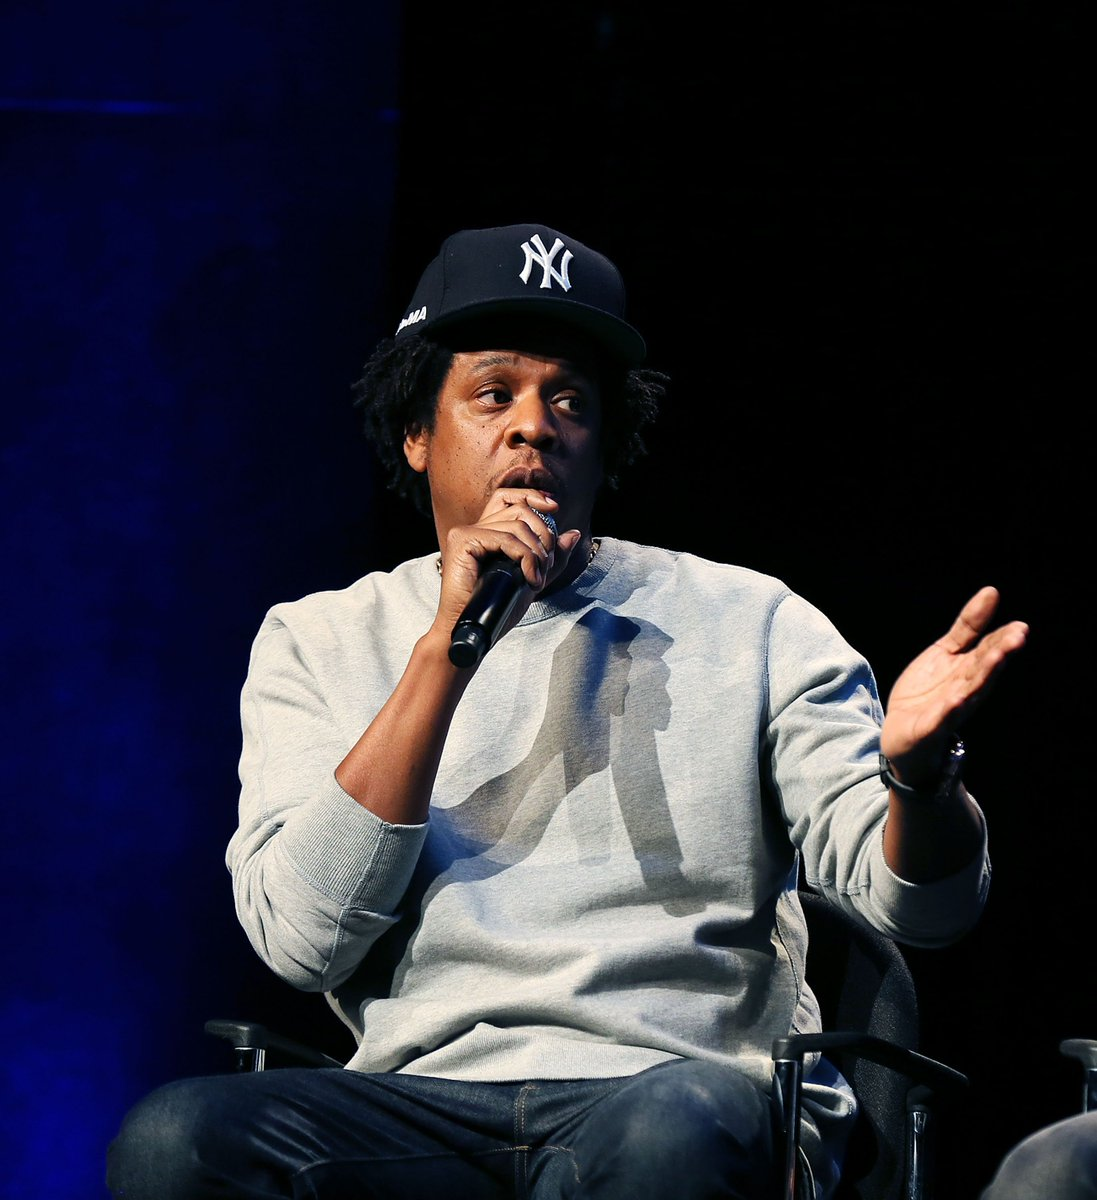 JUST IN: NFL reportedly planning to partner with JAY-Z and Roc Nation.➡️http://cmplx.co/pnEaKt2